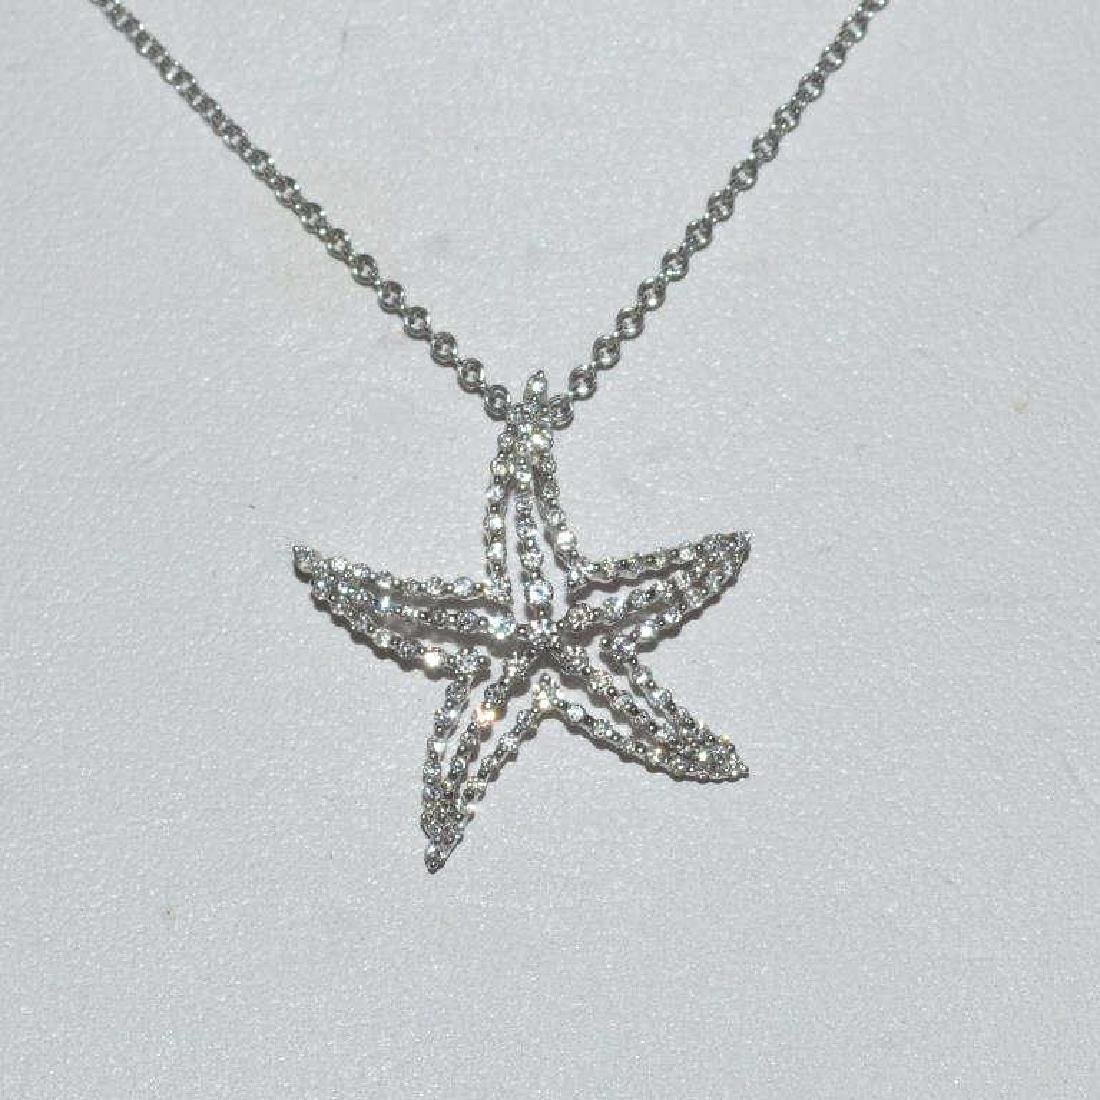 18kt white gold diamond starfish pendant